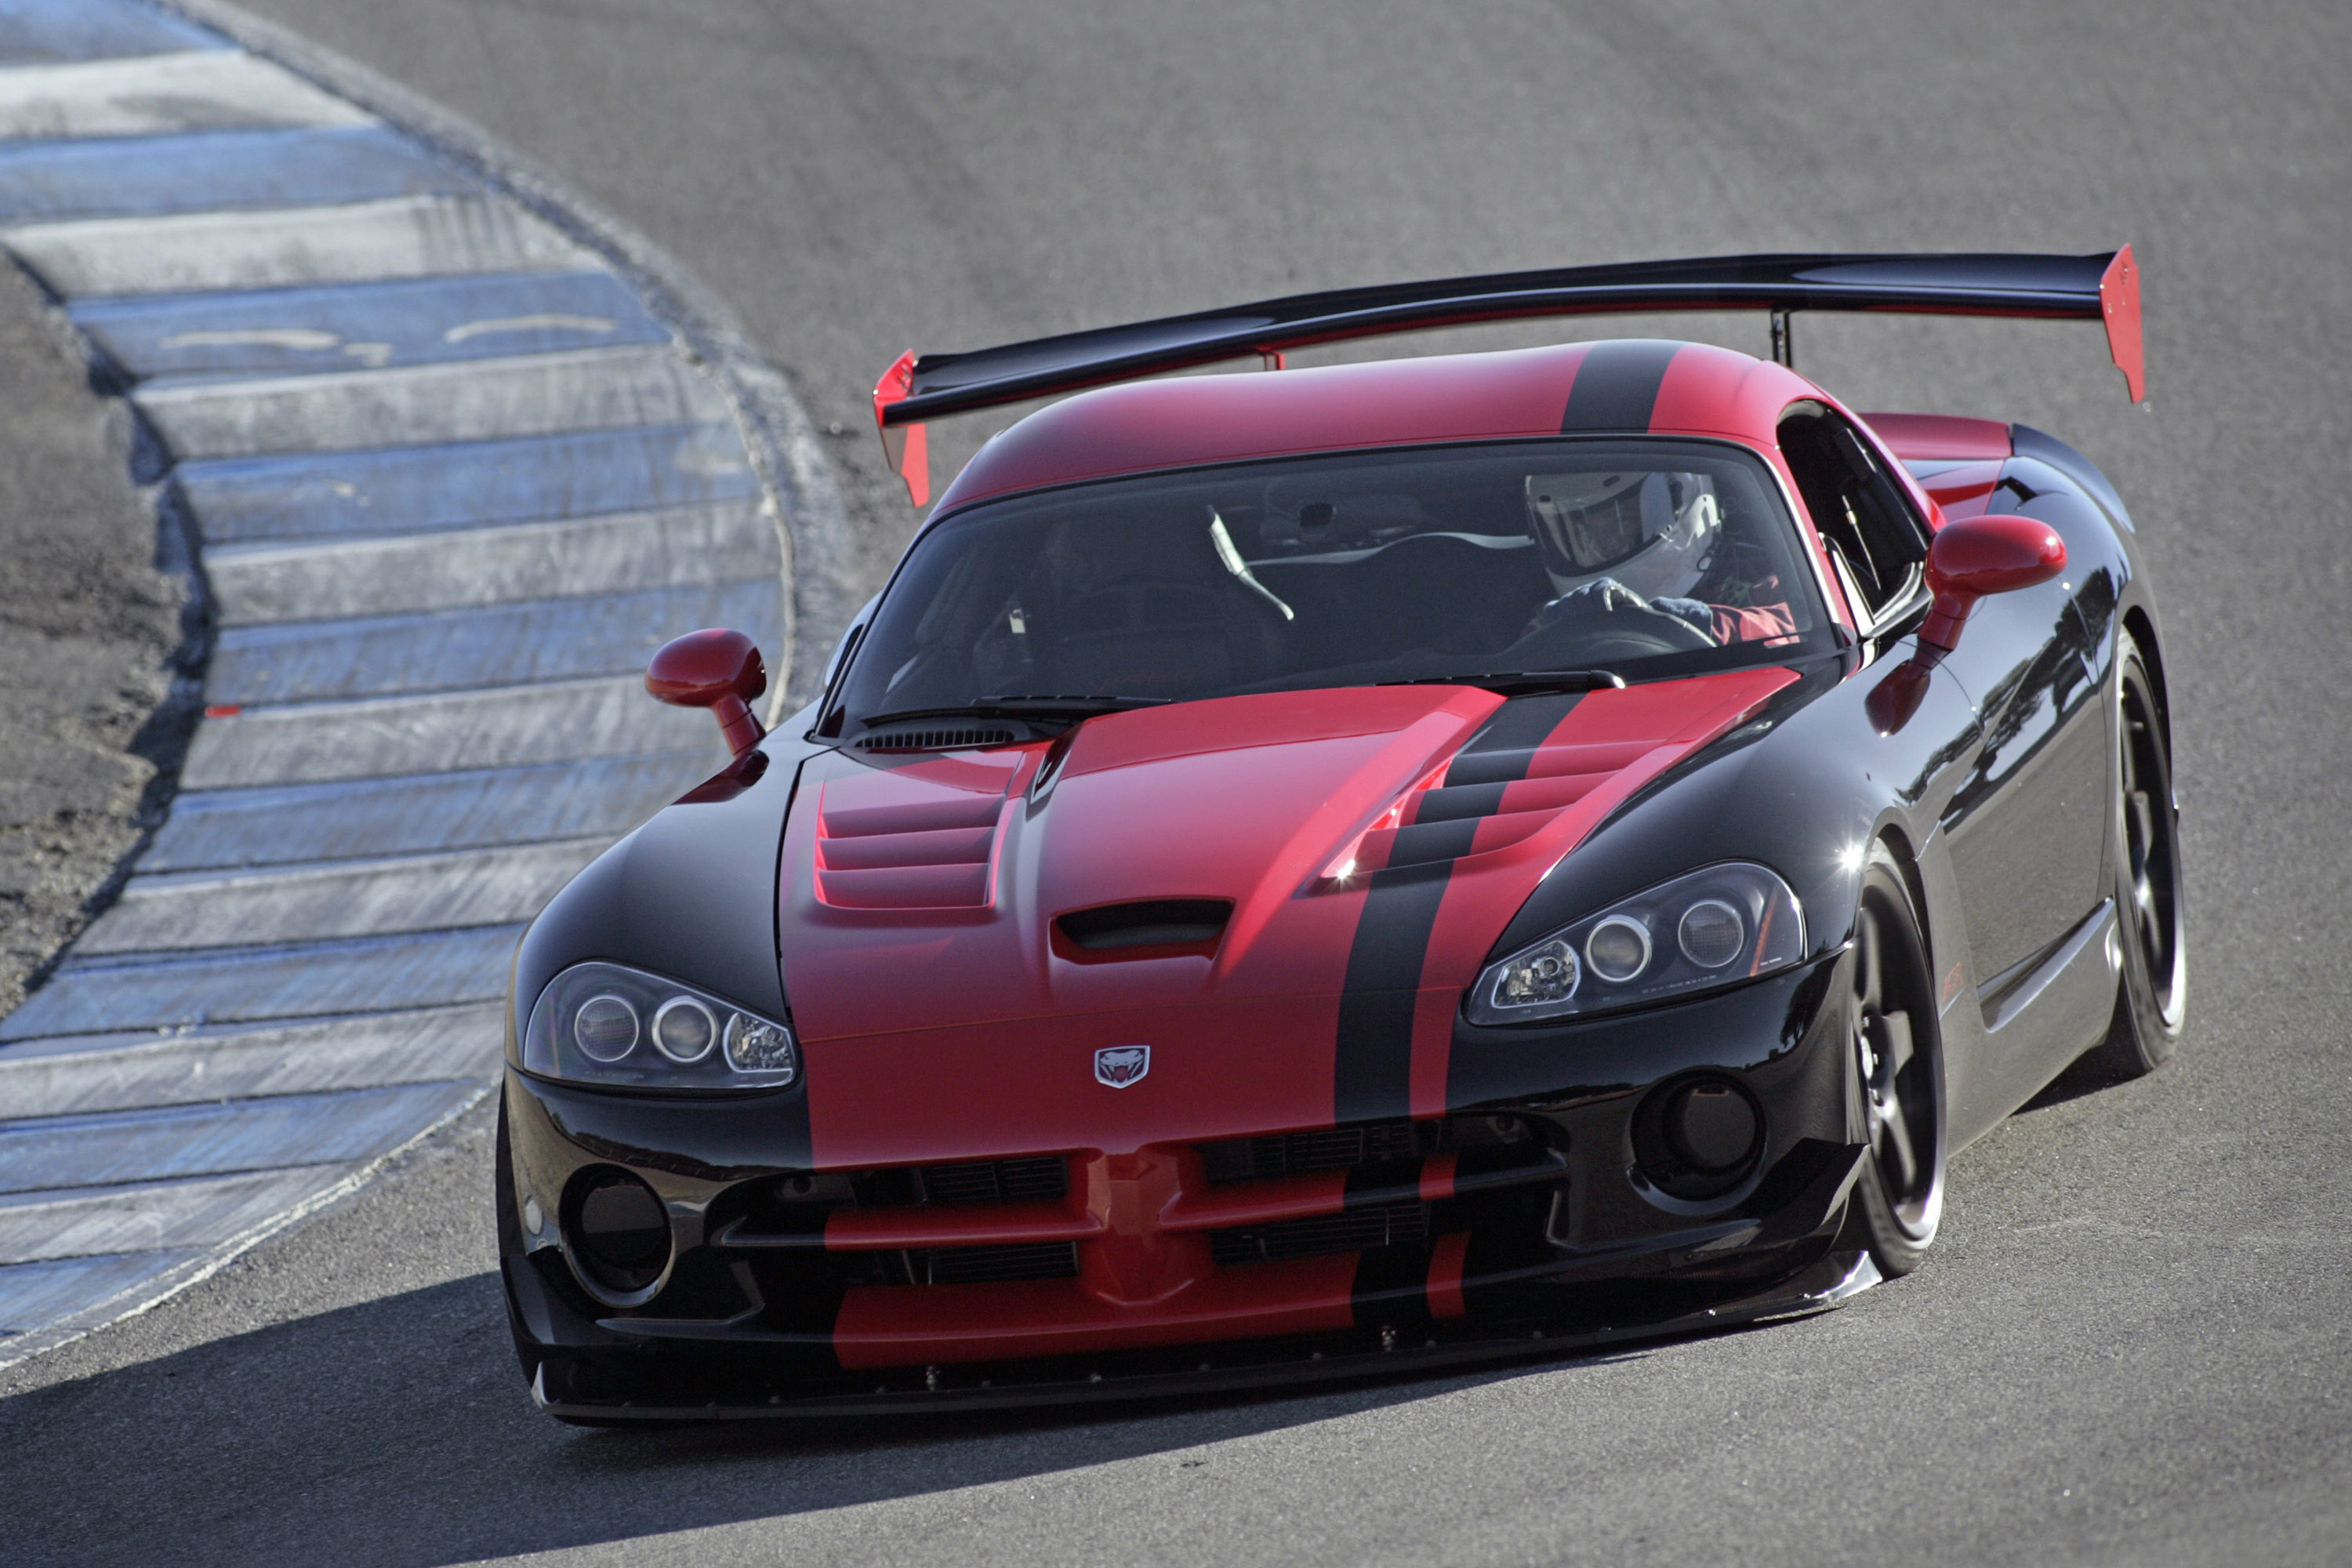 Dodge Viper ACR 133 Edition [video] - 640HP and 820Nm